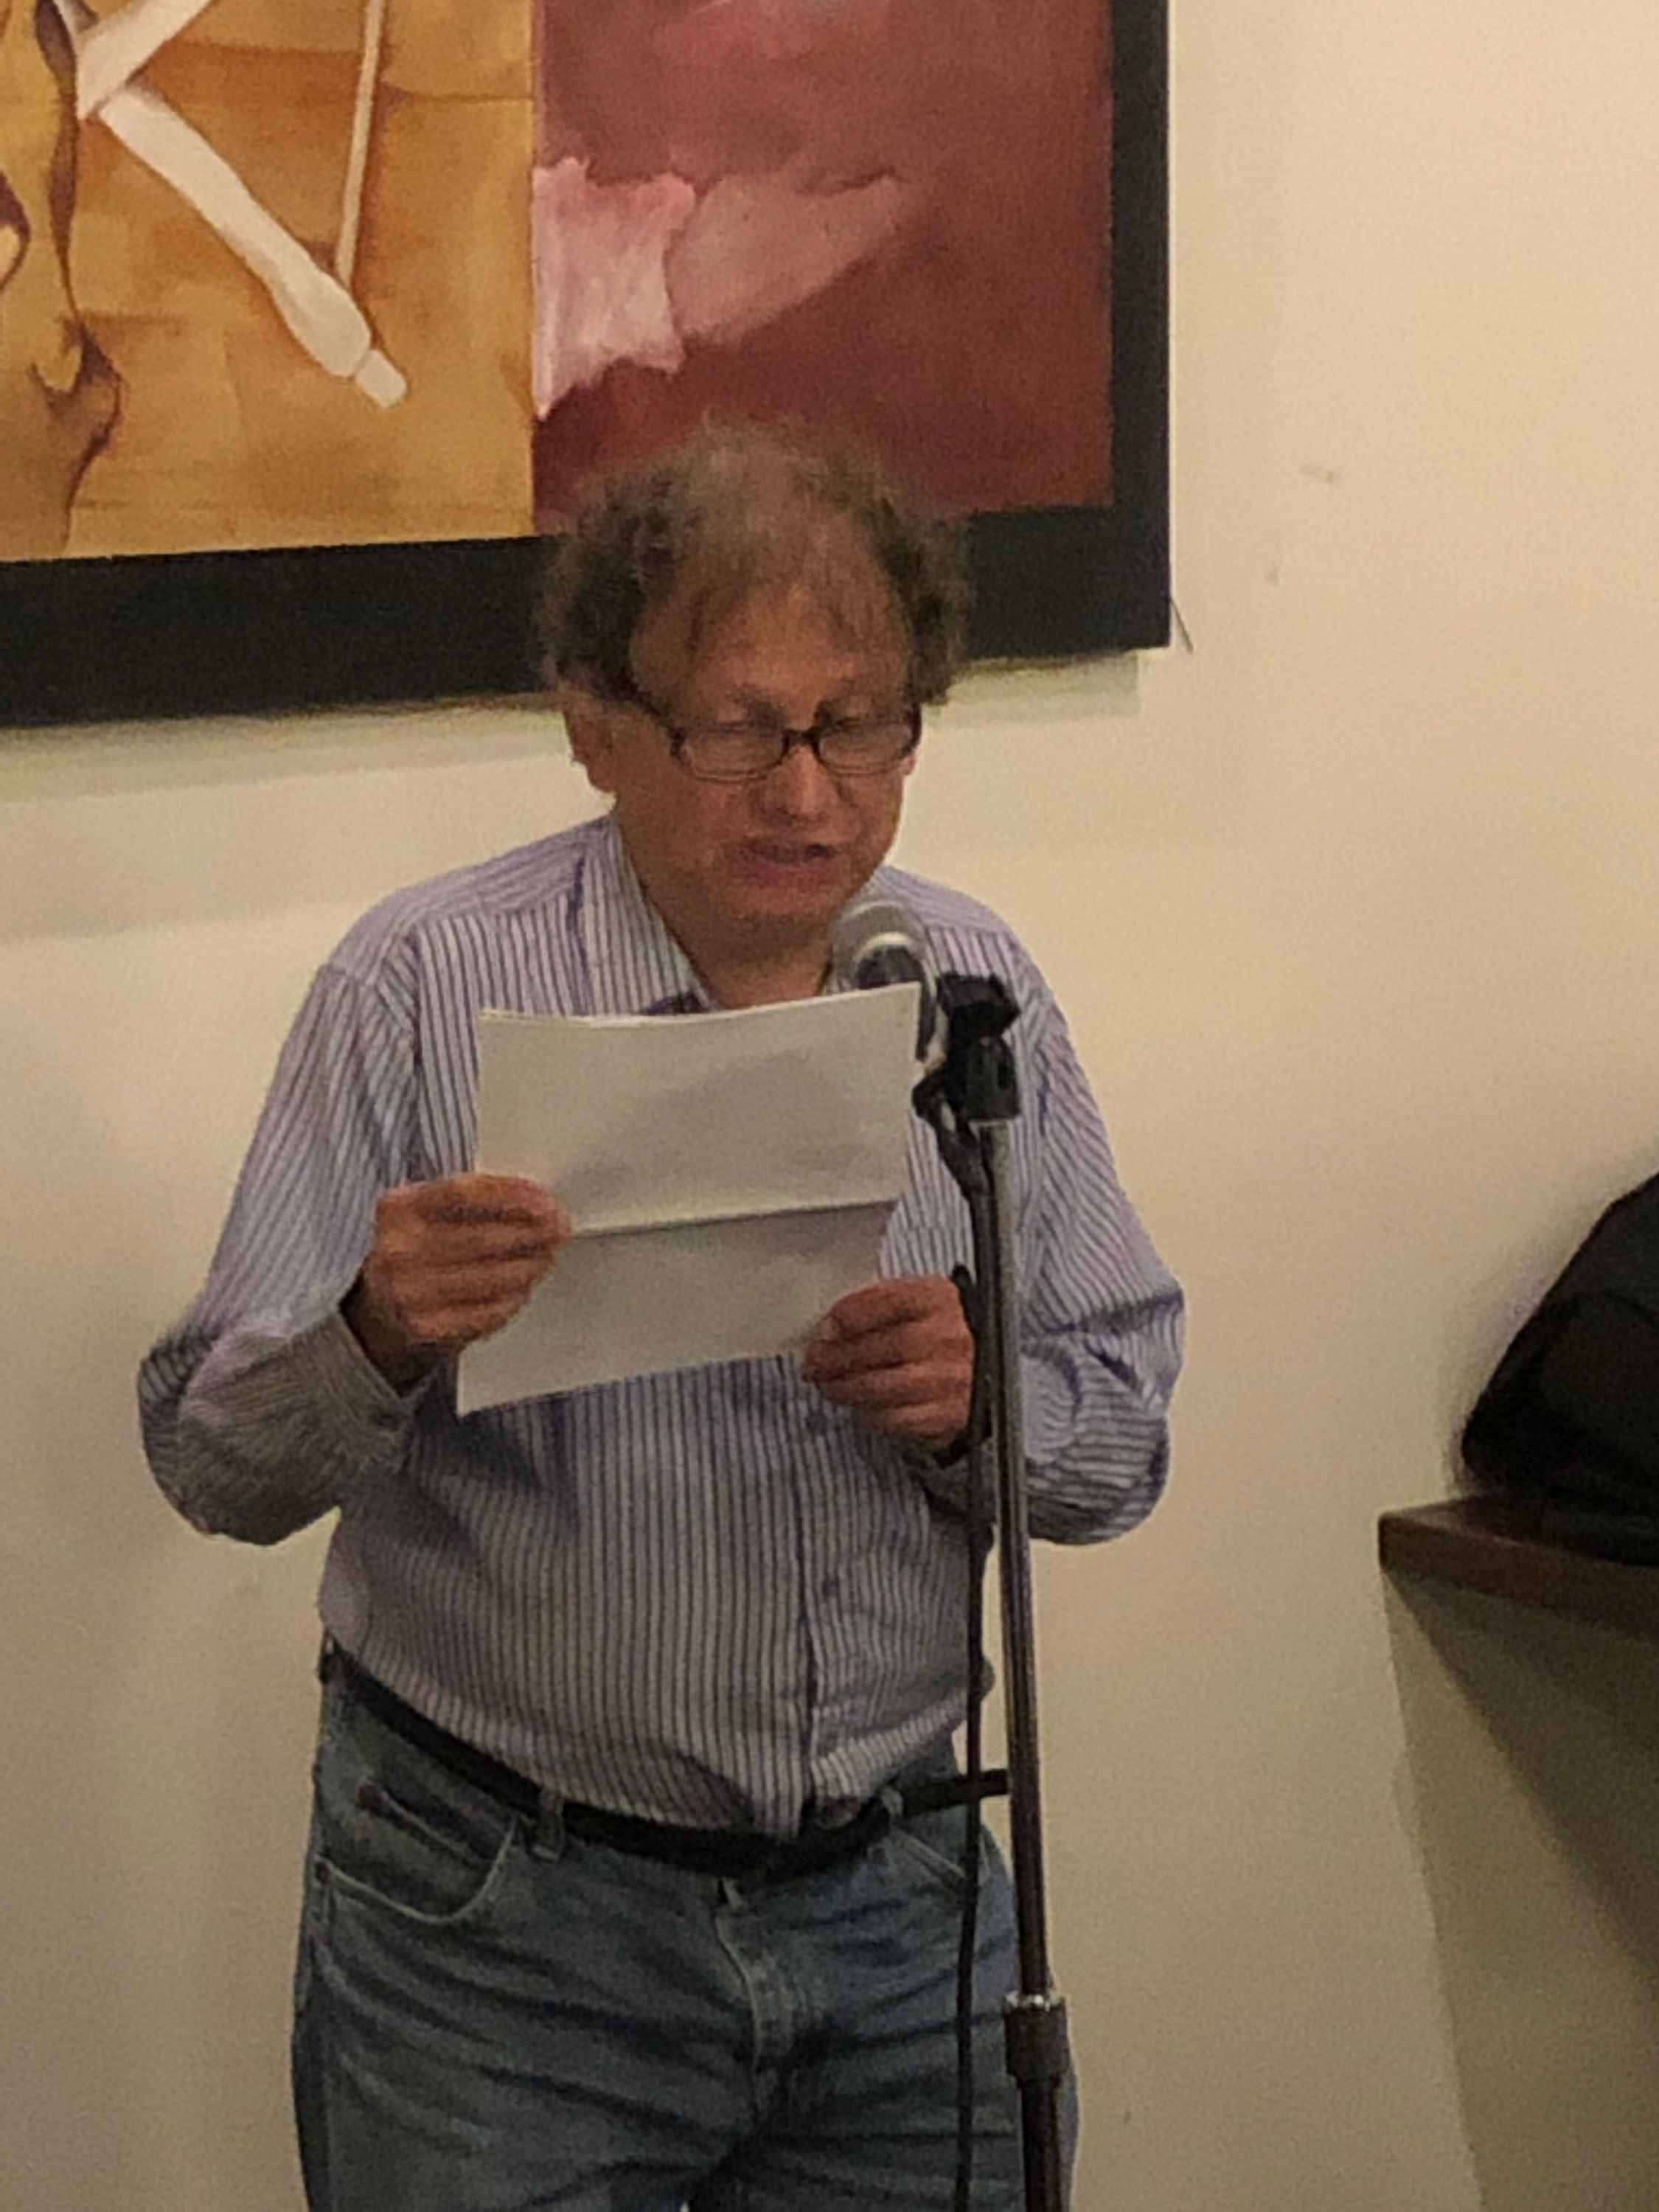 herb rubenstein at first tuesdays, sept 3